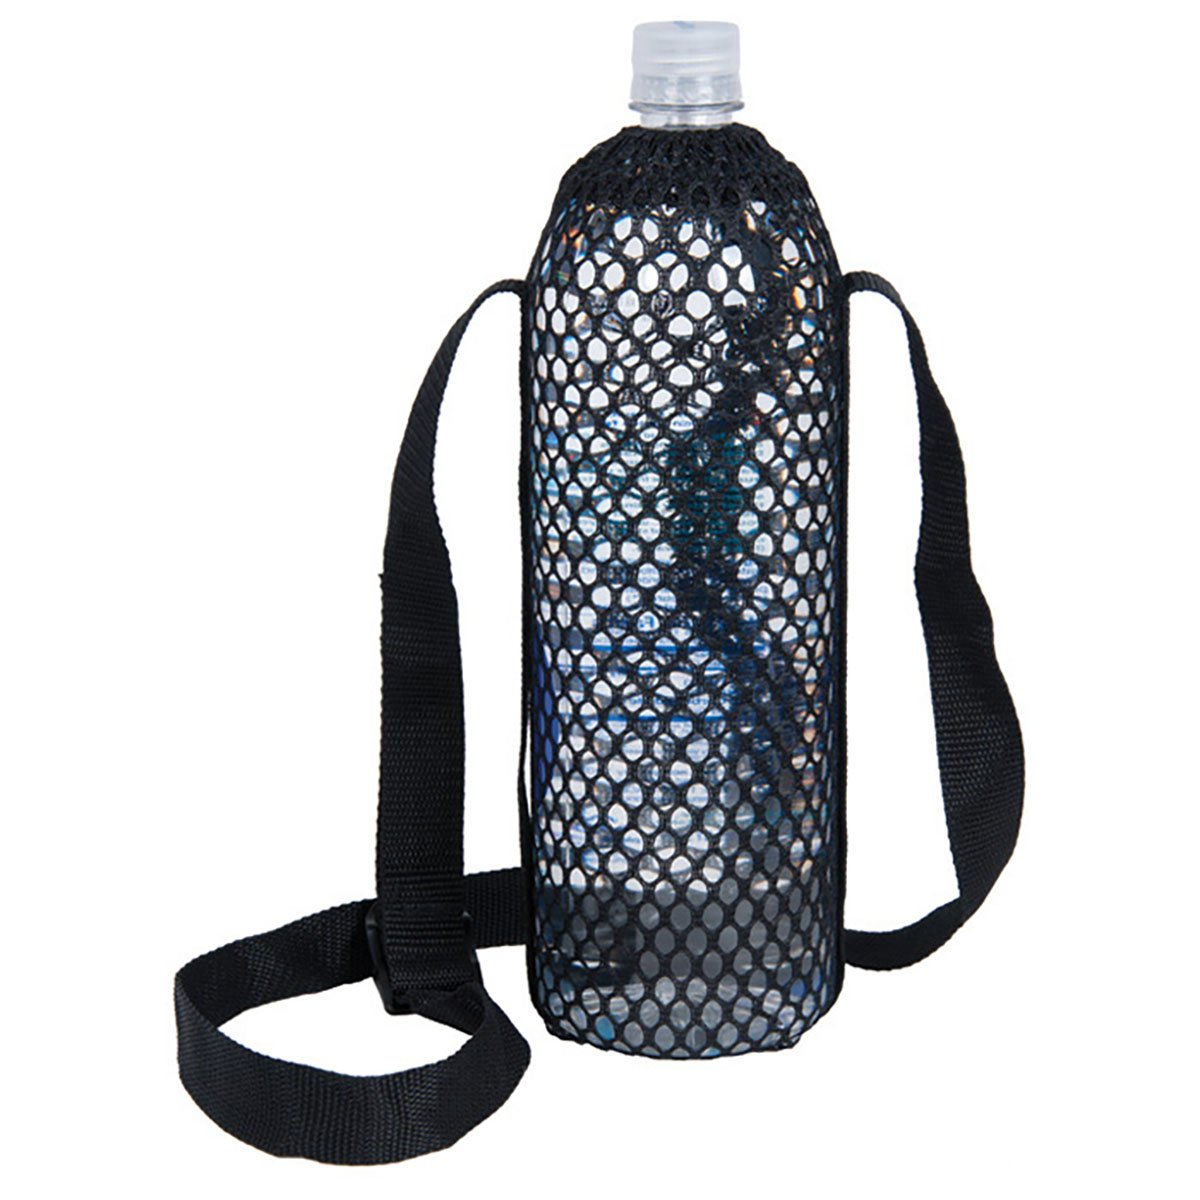 Water Bottle Strap: Water Bottle Carrier With Strap